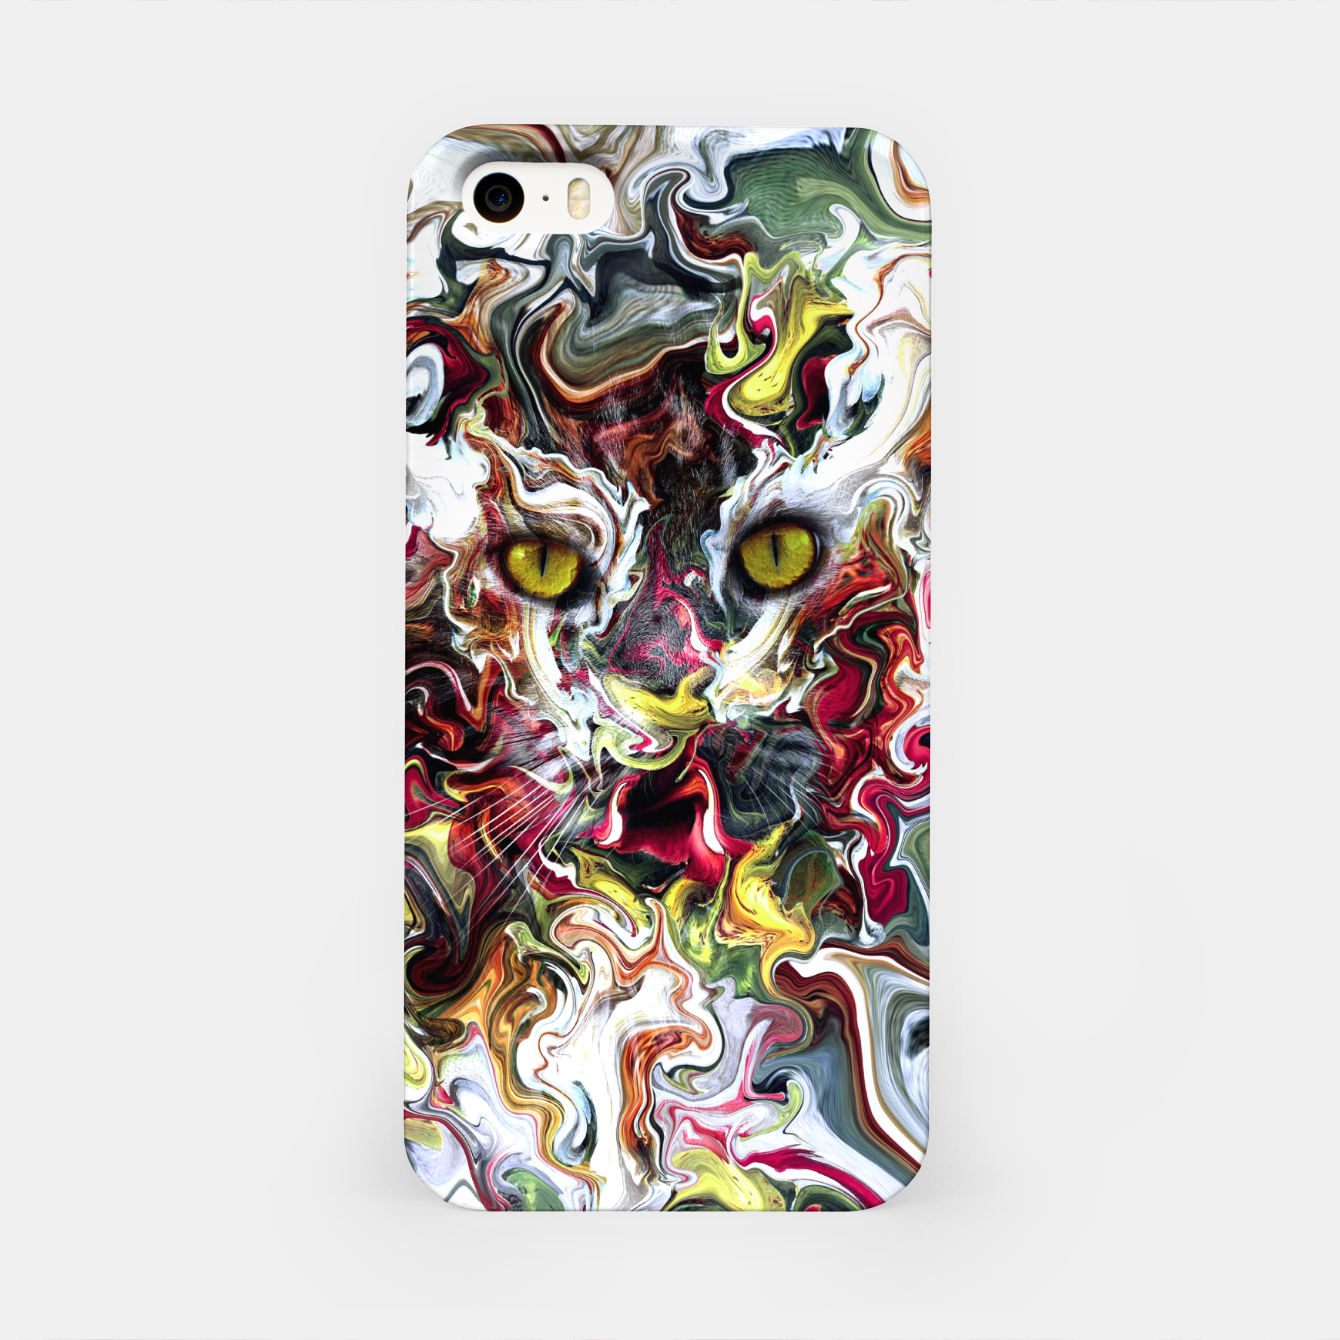 Foto Wildcat iPhone Case - Live Heroes